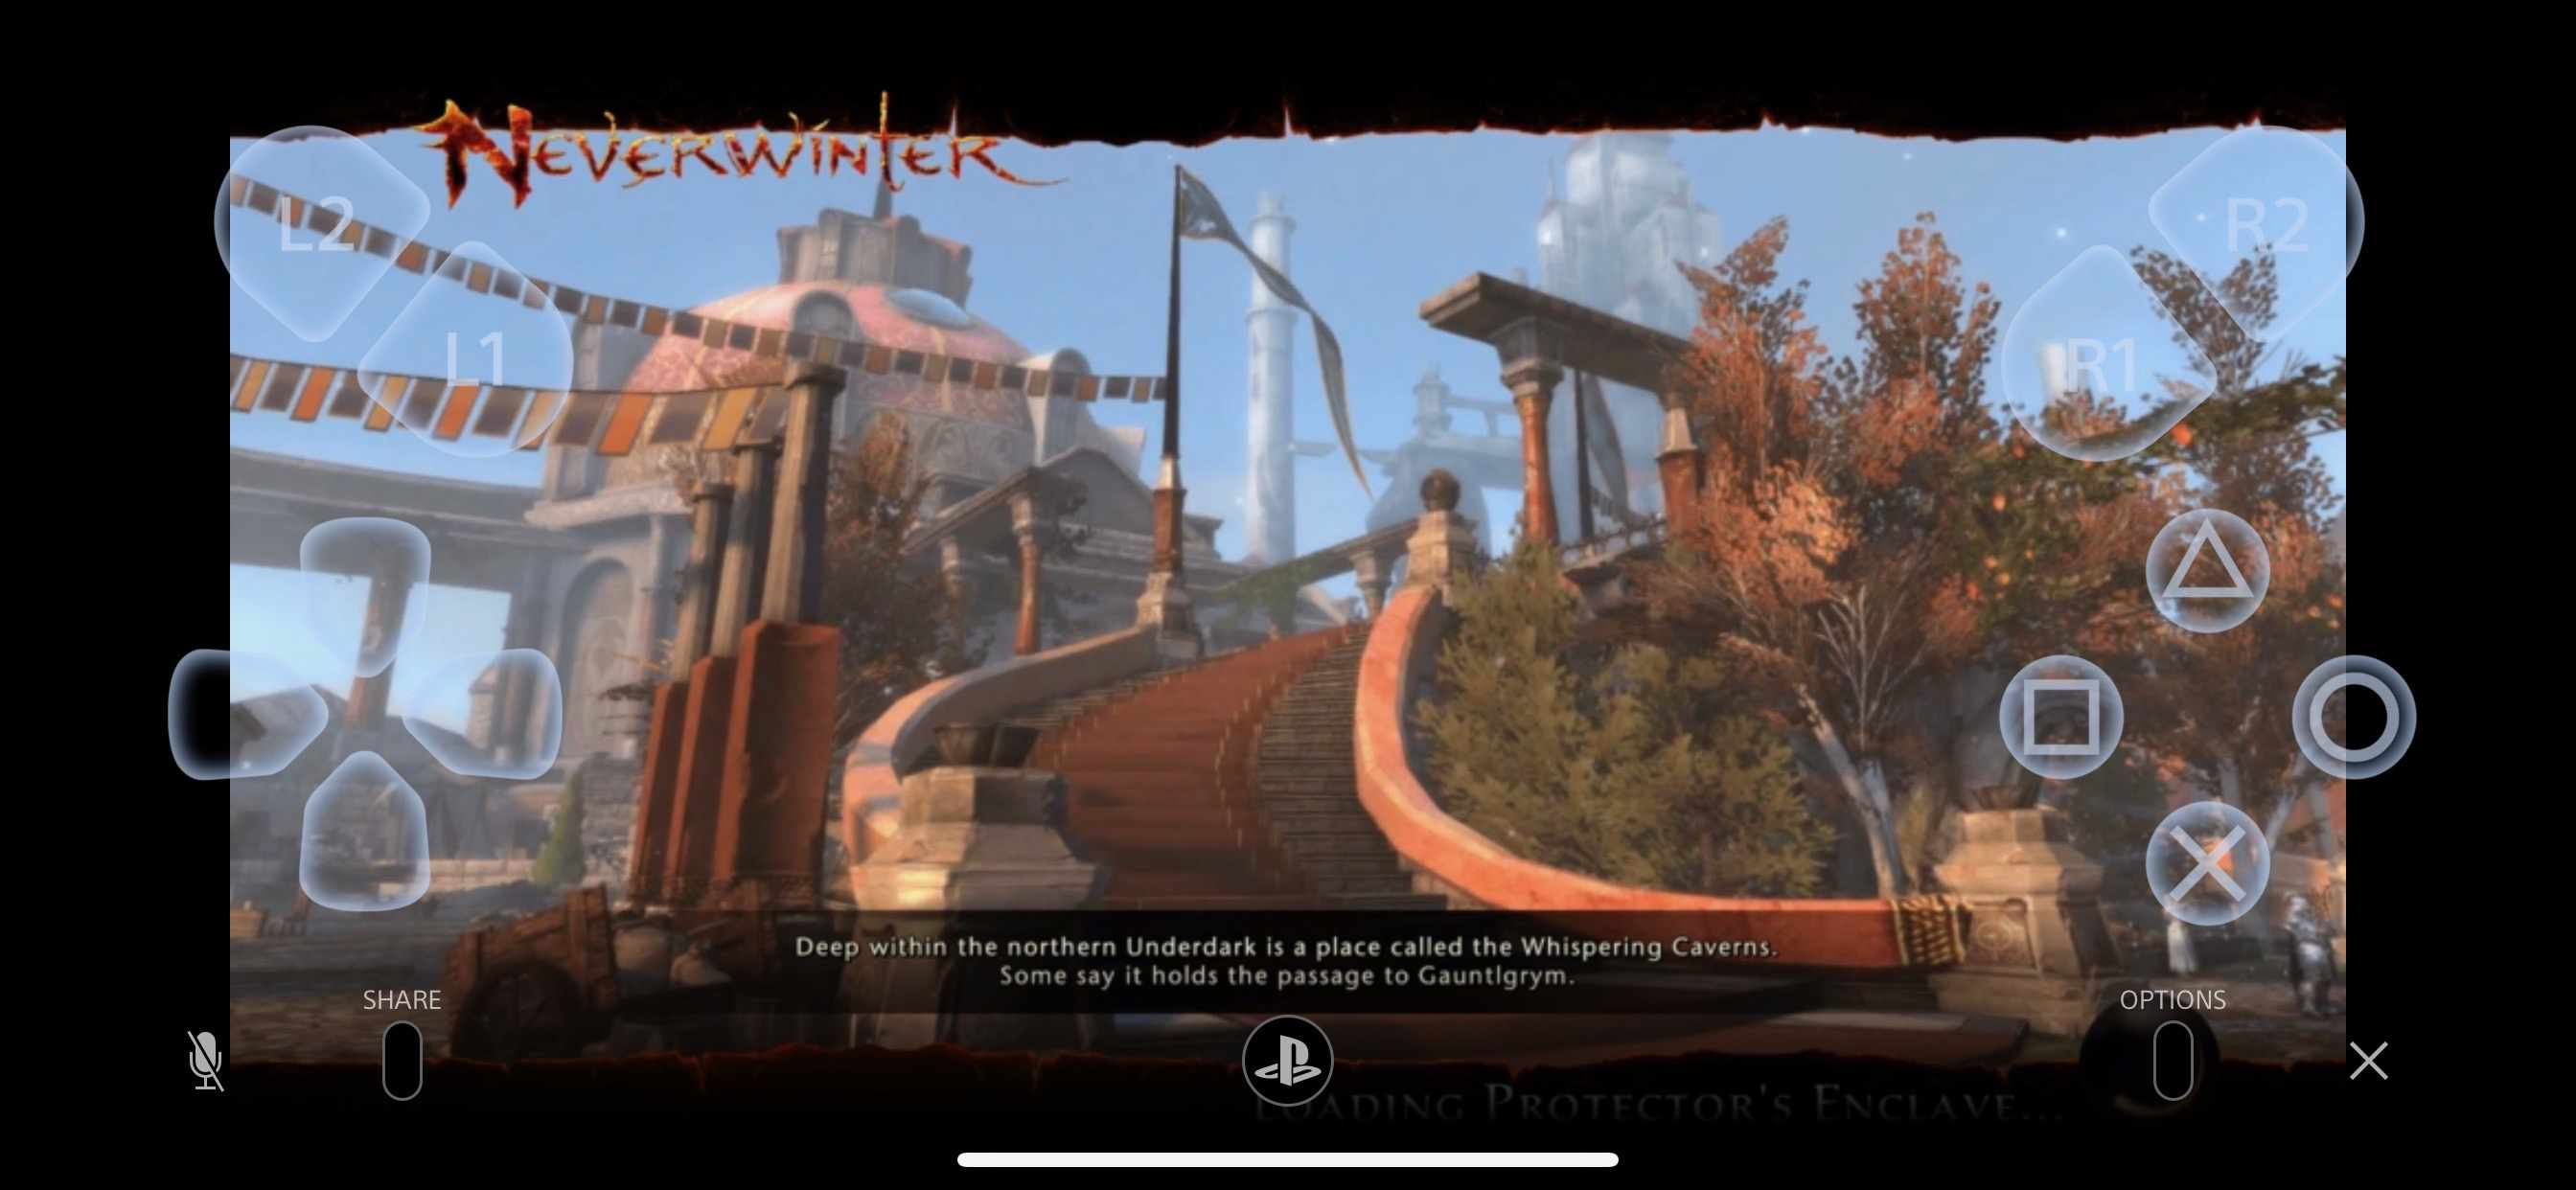 Neverwinter game from PS4 displayed on iPhone with control overlay